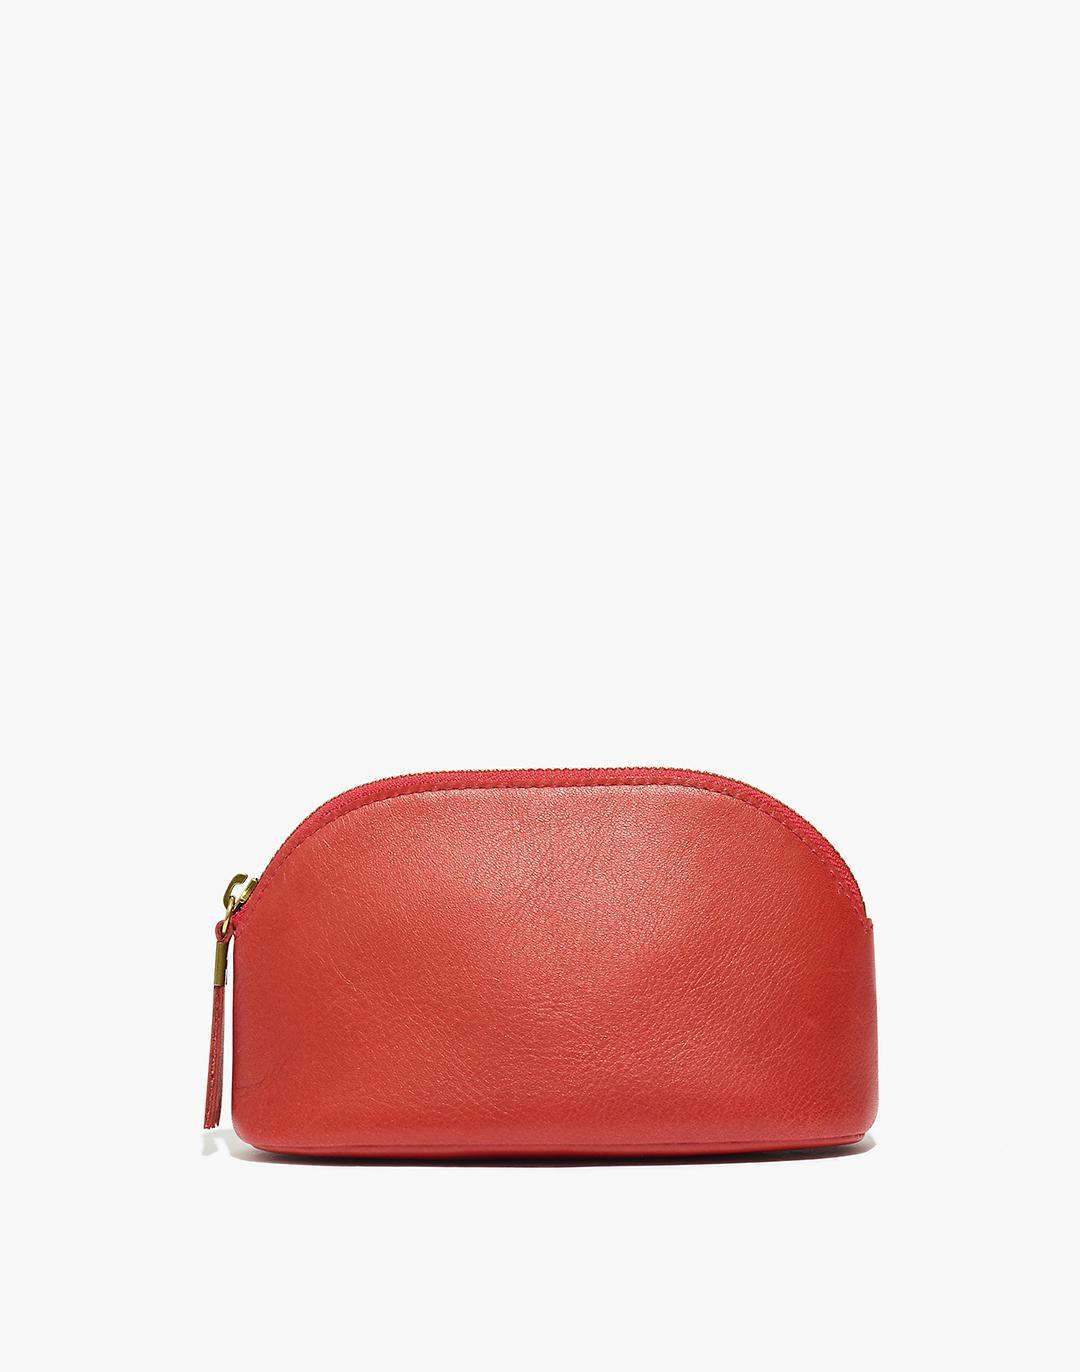 The Leather Makeup Pouch